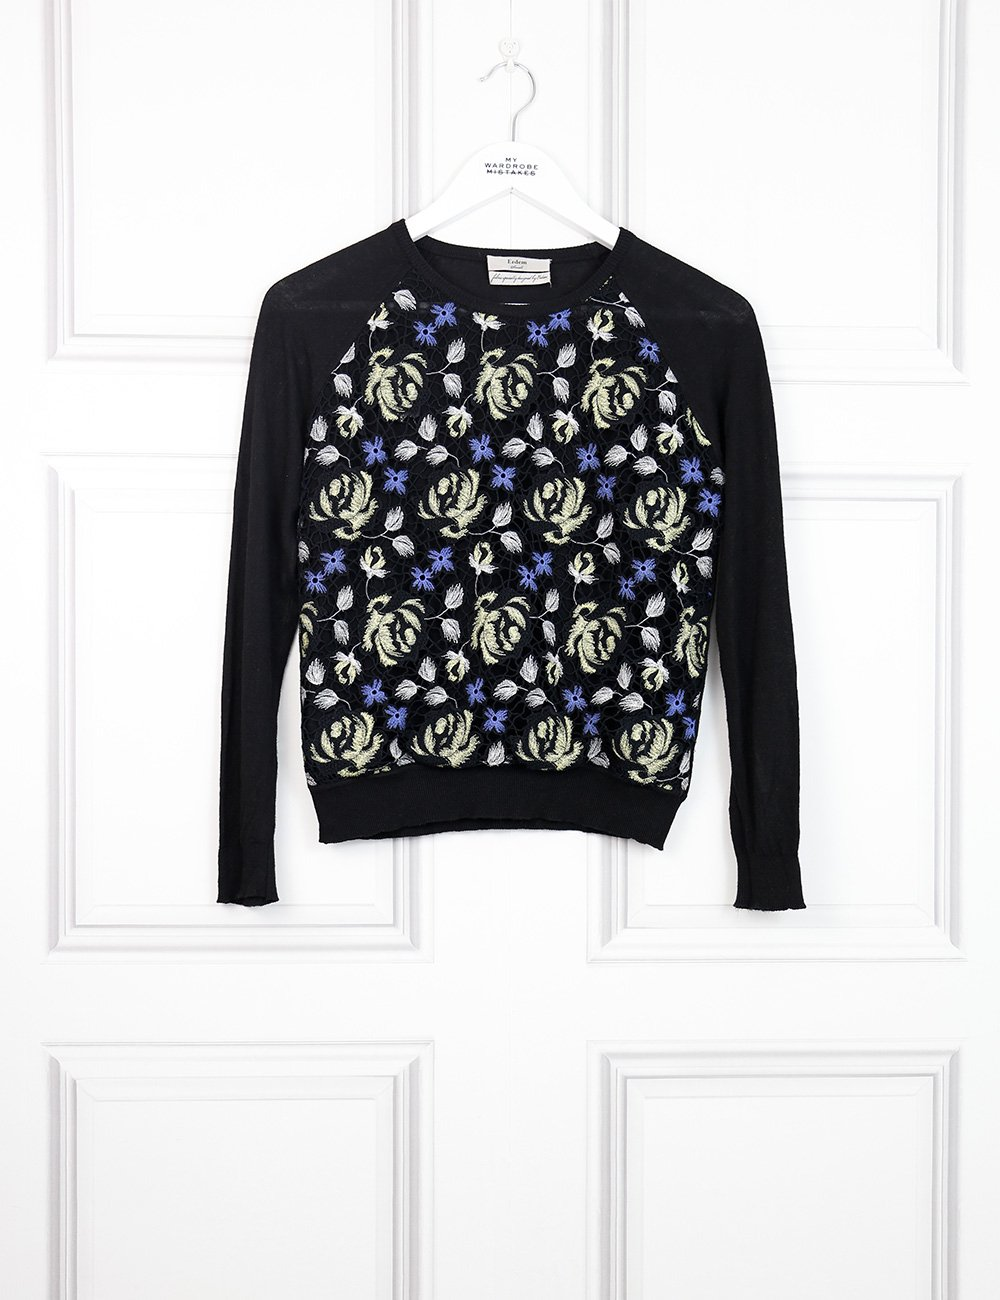 Erdem multicolour lace front knit sweater 8UK- My Wardrobe Mistakes